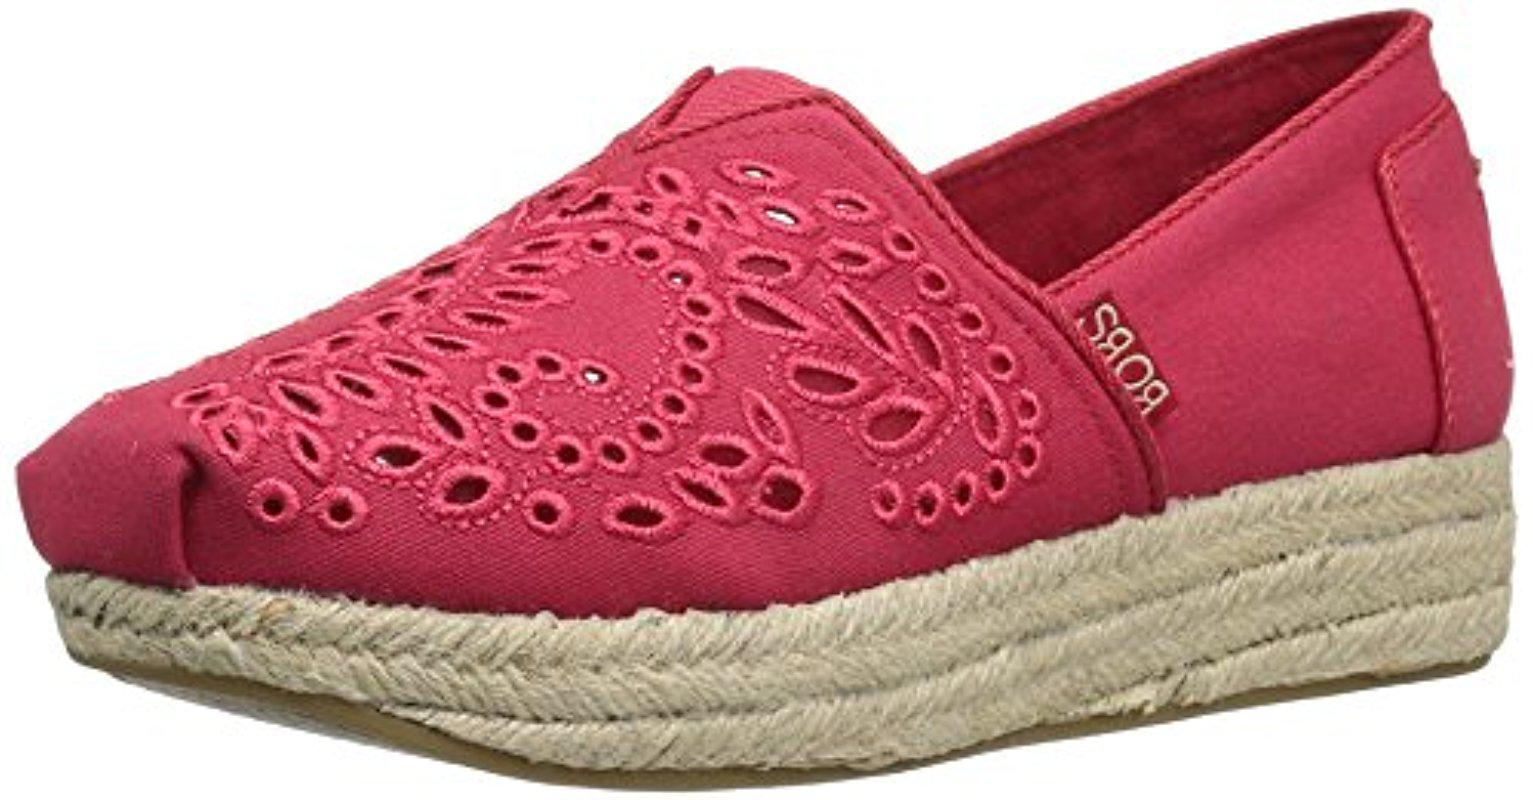 Skechers. Women's Red Bobs From Highlights Flexpadrille Wedge